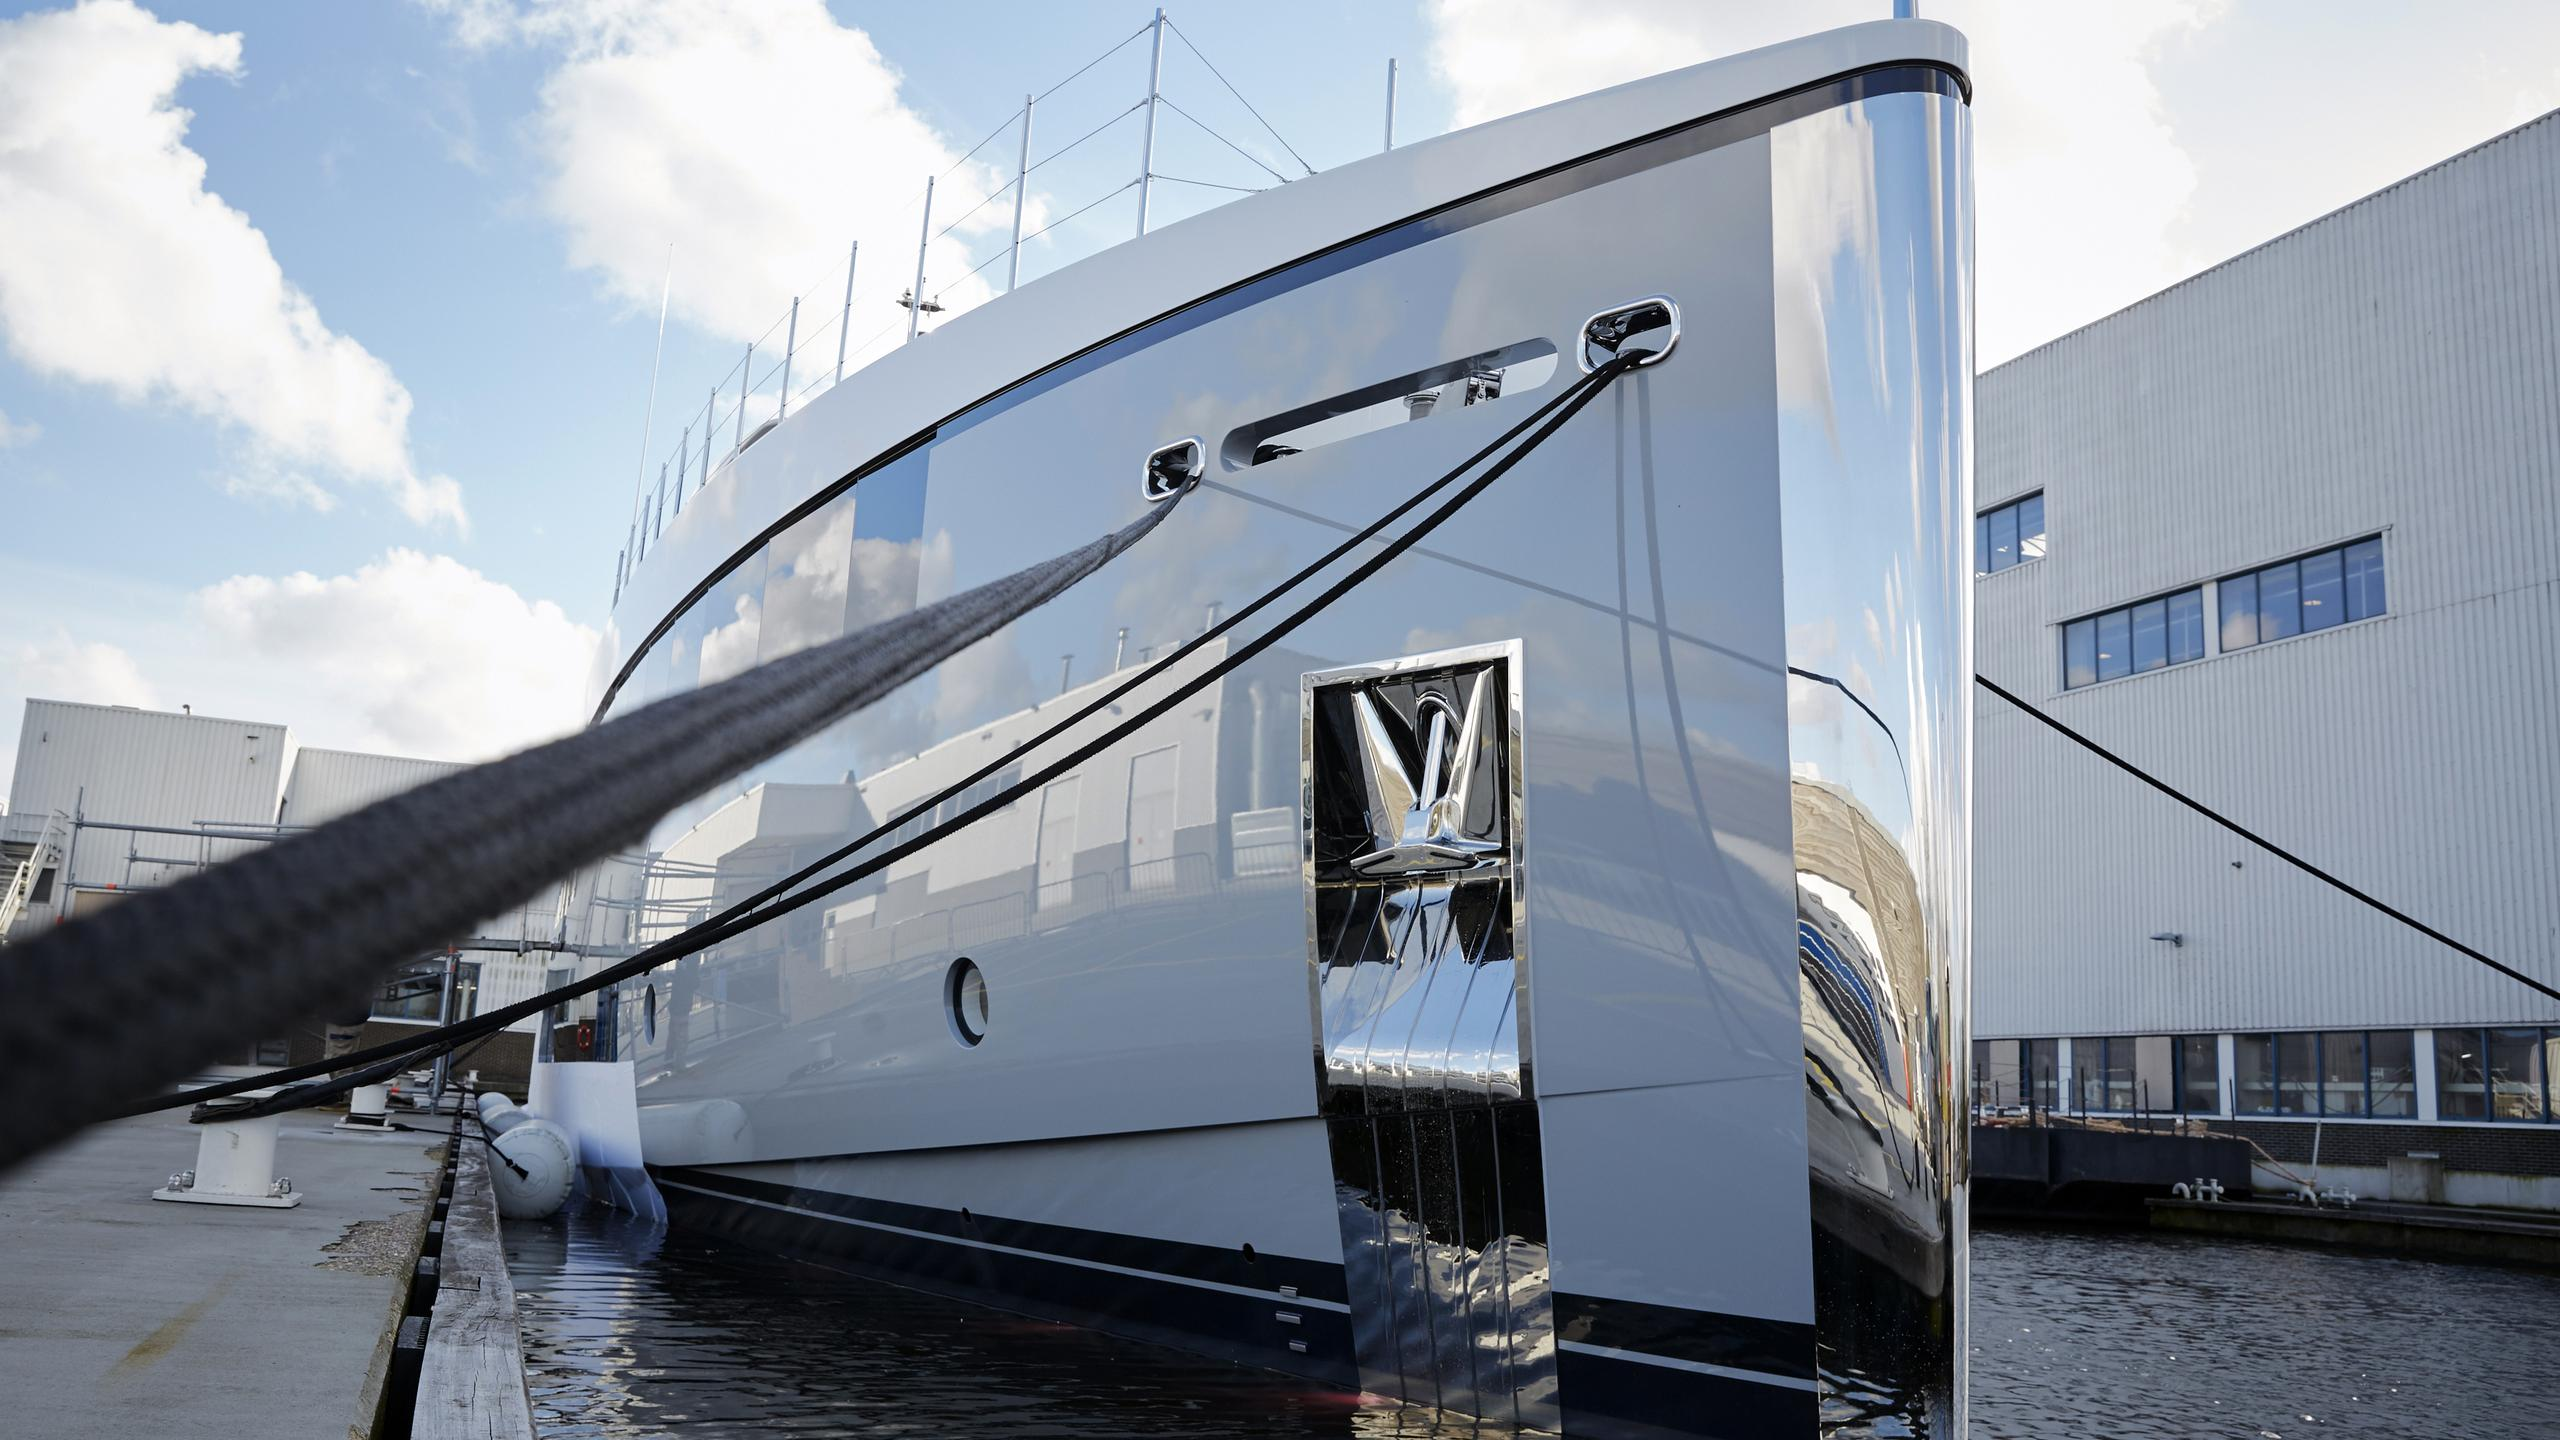 feadship-hull-692-2016-34m-de-voogt-bannenberg-rowell-yacht-bow